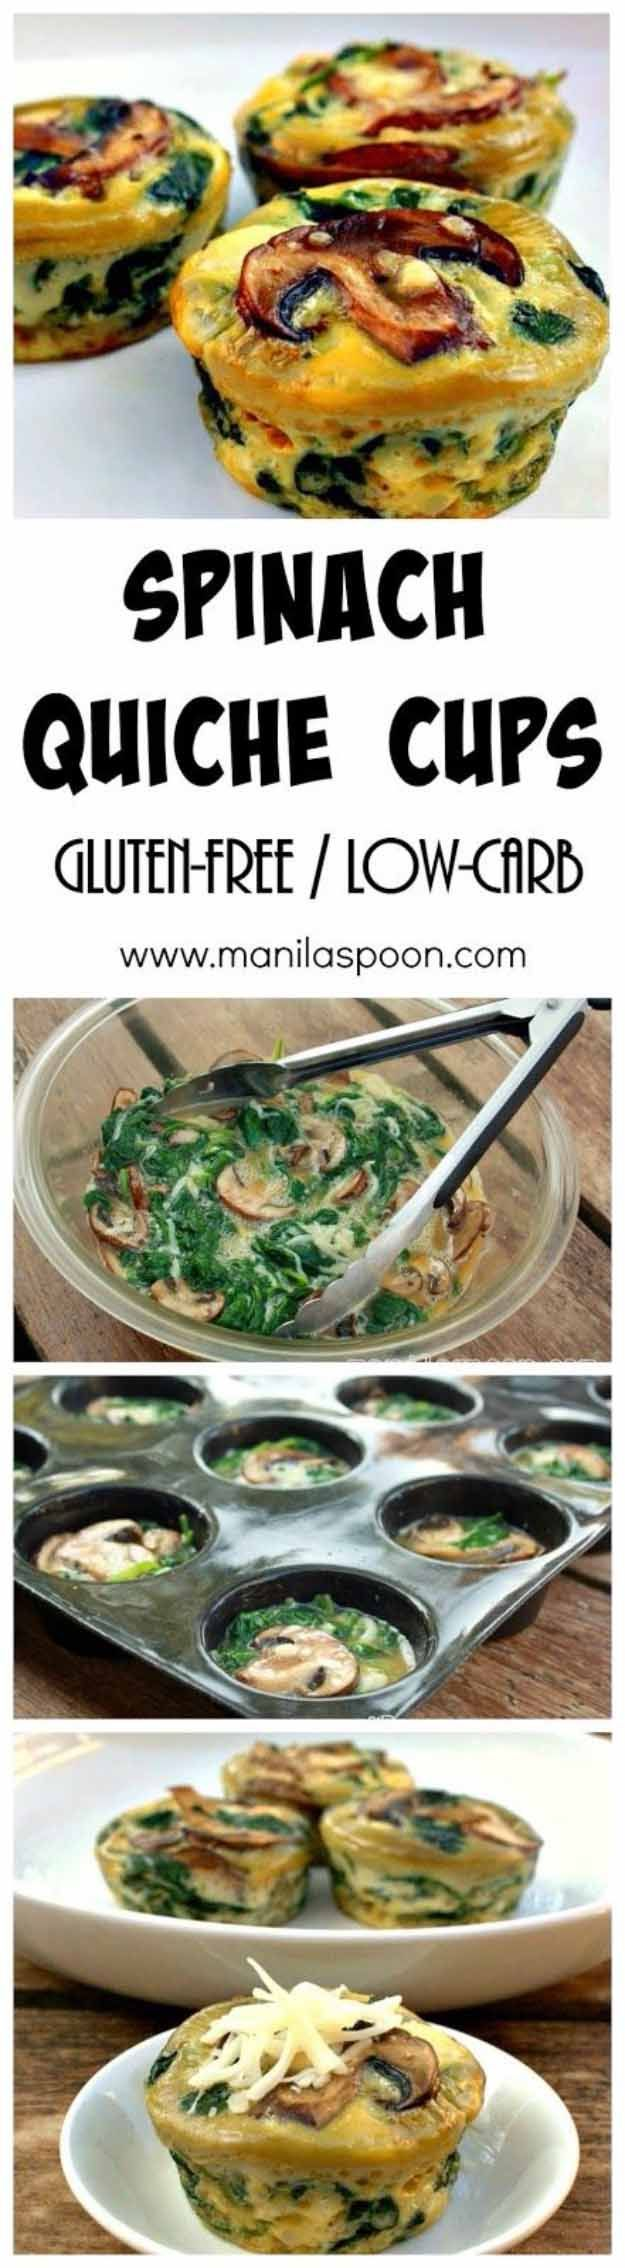 Quick and Easy Healthy Dinner Recipes - Spinach Quiche Cups- Awesome Recipes For Weight Loss - Great Receipes For One, For Two or For Family Gatherings - Quick Recipes for When You're On A Budget - Chicken and Zucchini Dishes Under 500 Calories - Quick Low Carb Dinners With Beef or Shrimp or Even Vegetarian - Amazing Dishes For Picky Eaters - https://thegoddess.com/easy-healthy-dinner-receipes